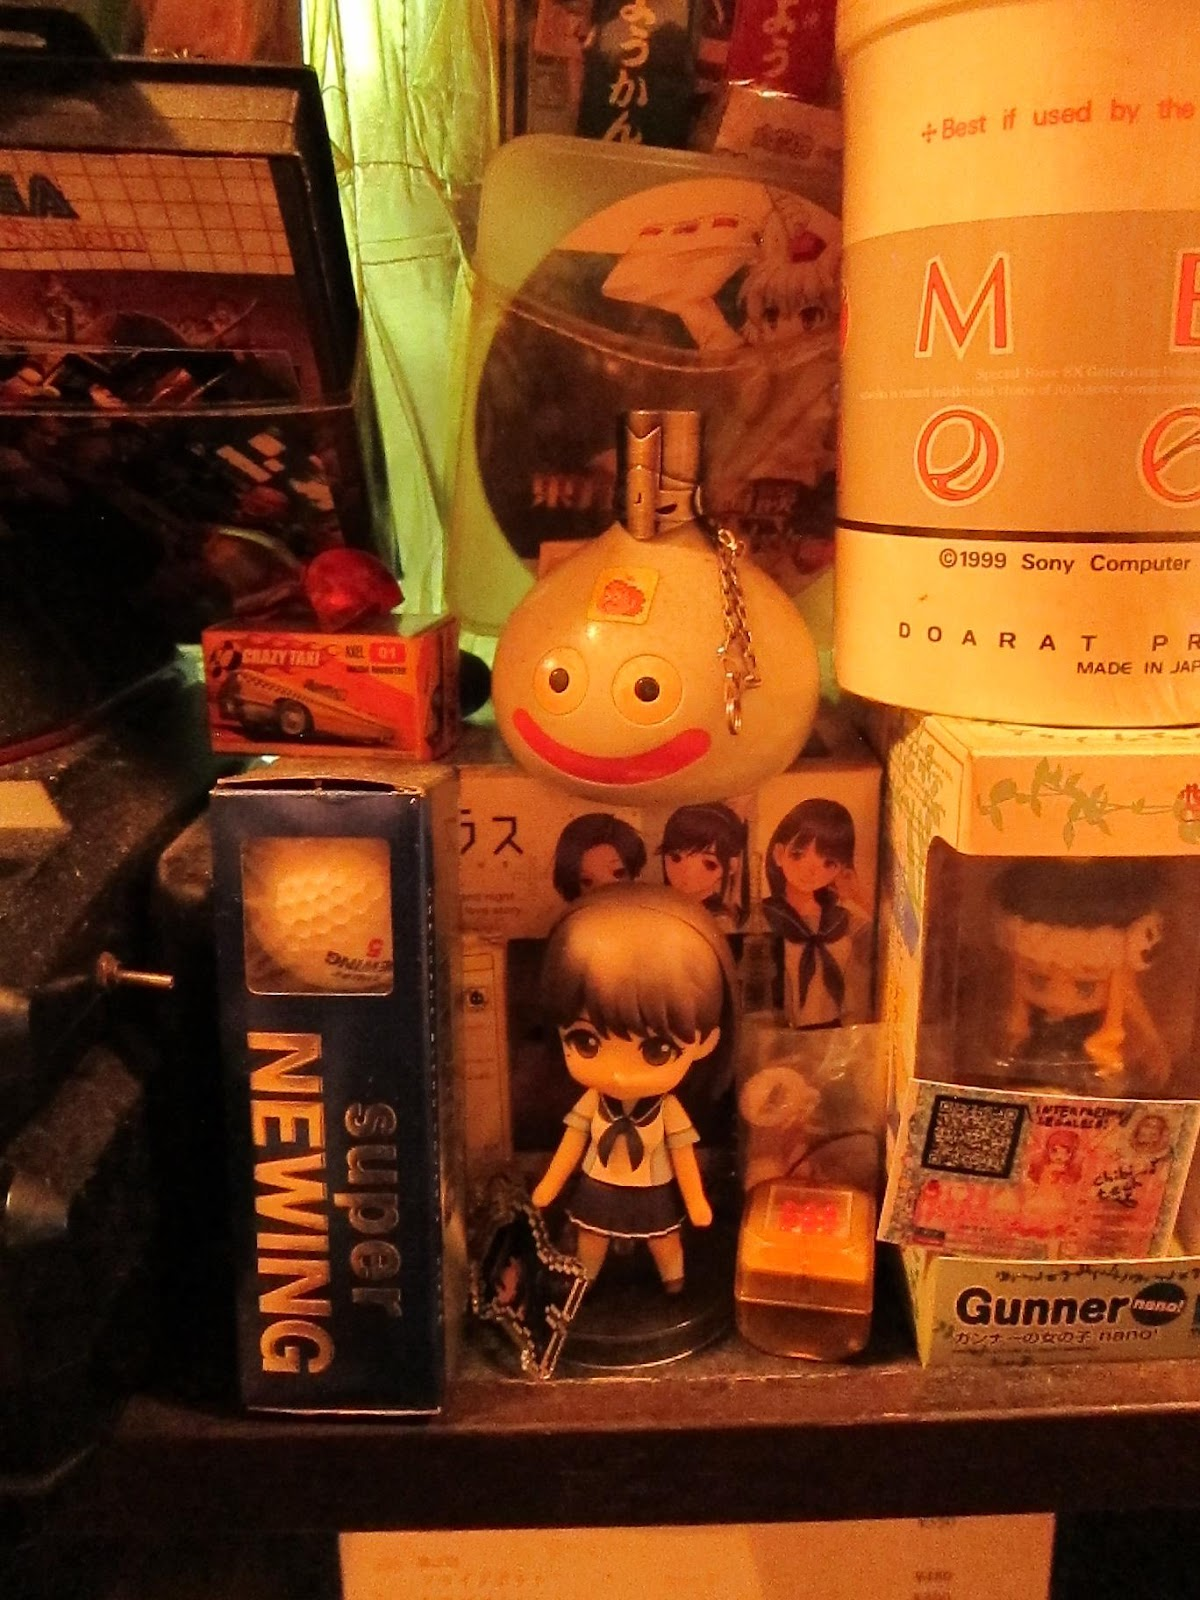 C:\Users\J\Pictures\TOKYO NOV 2016\GAMEBAR A BUTTON\IMG_0325.JPG